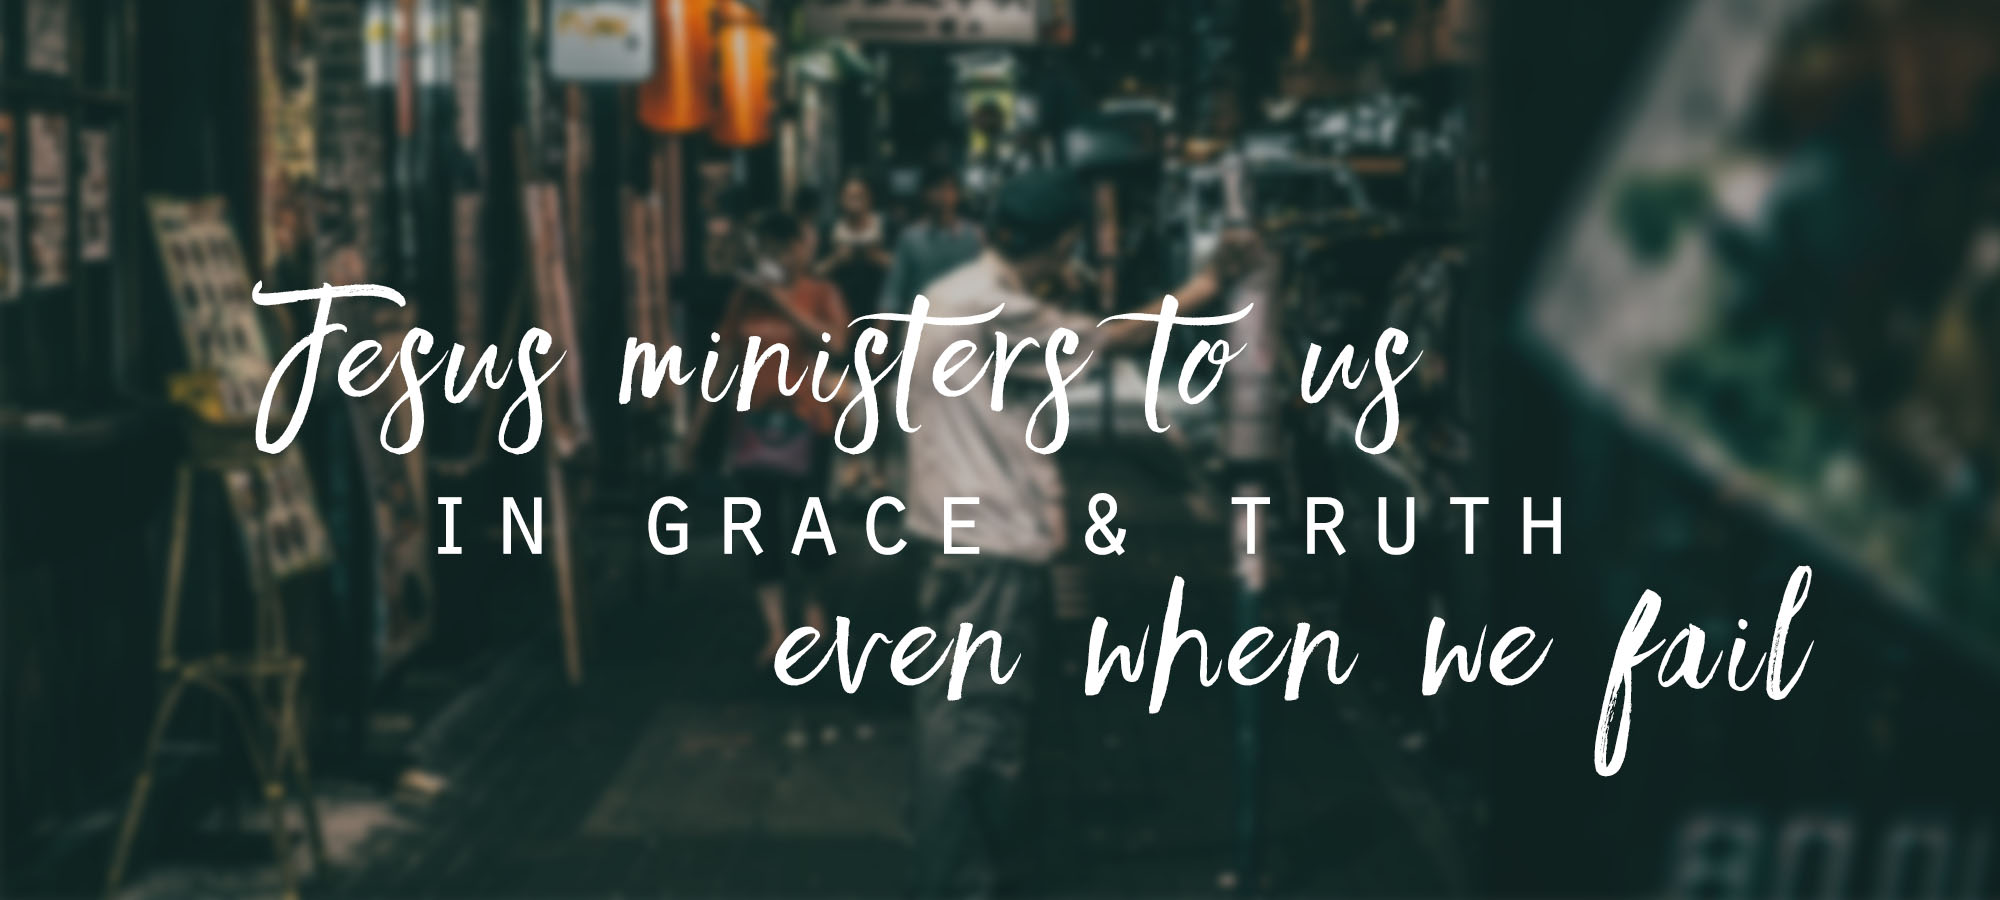 Jesus Ministers to Us in Grace and Truth, Even When We Fail